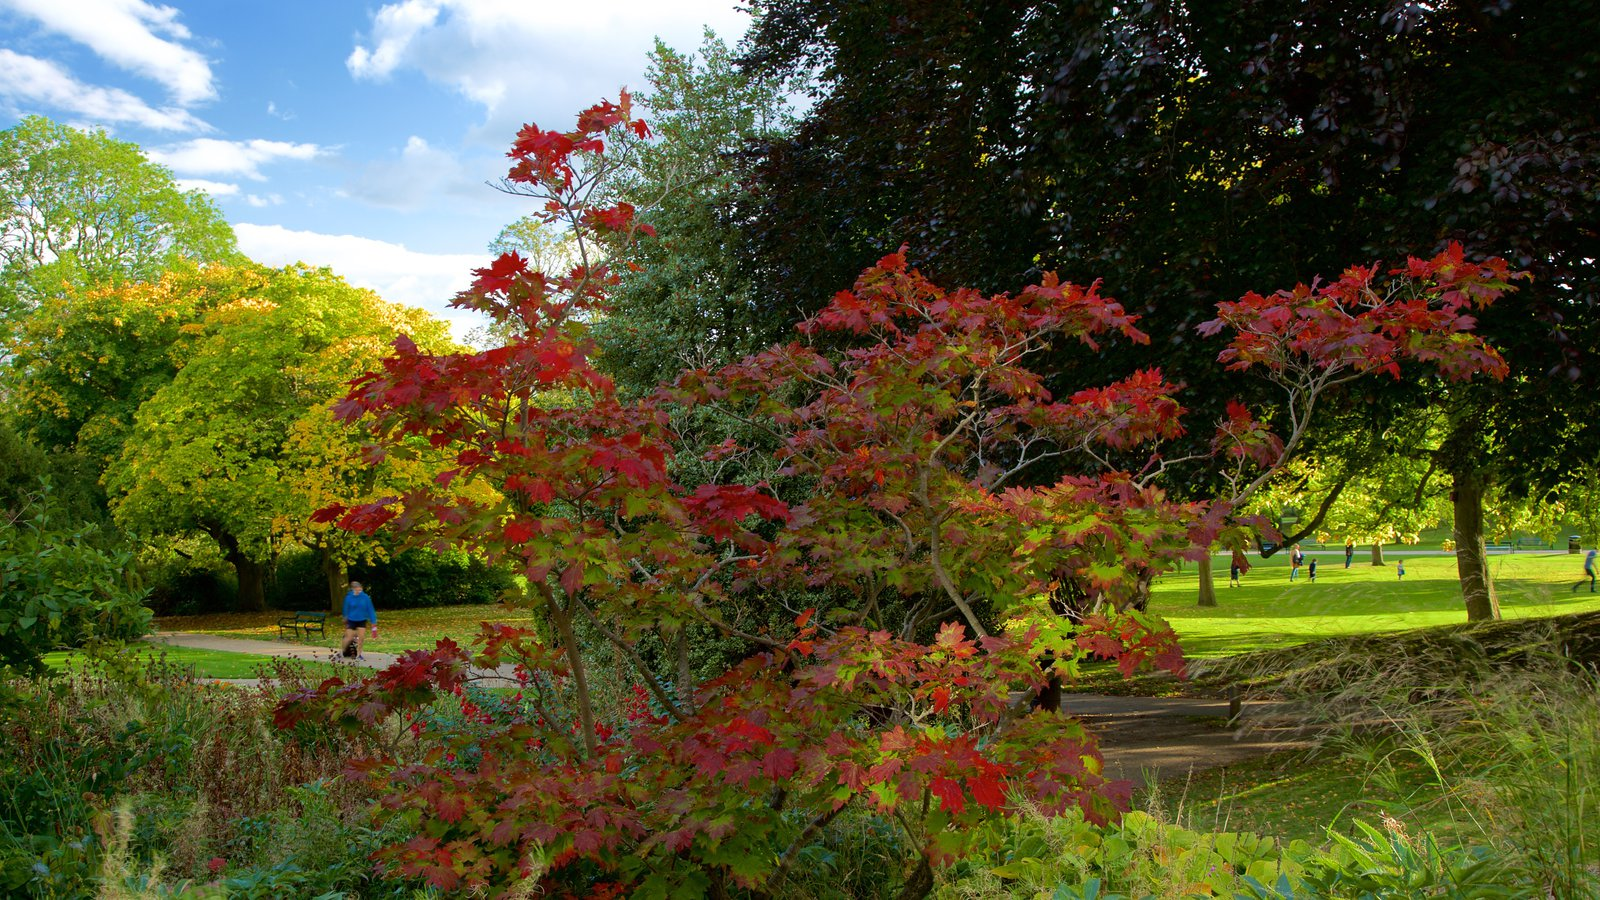 Sheffield Botanical Gardens Pictures: View Photos & Images of ...